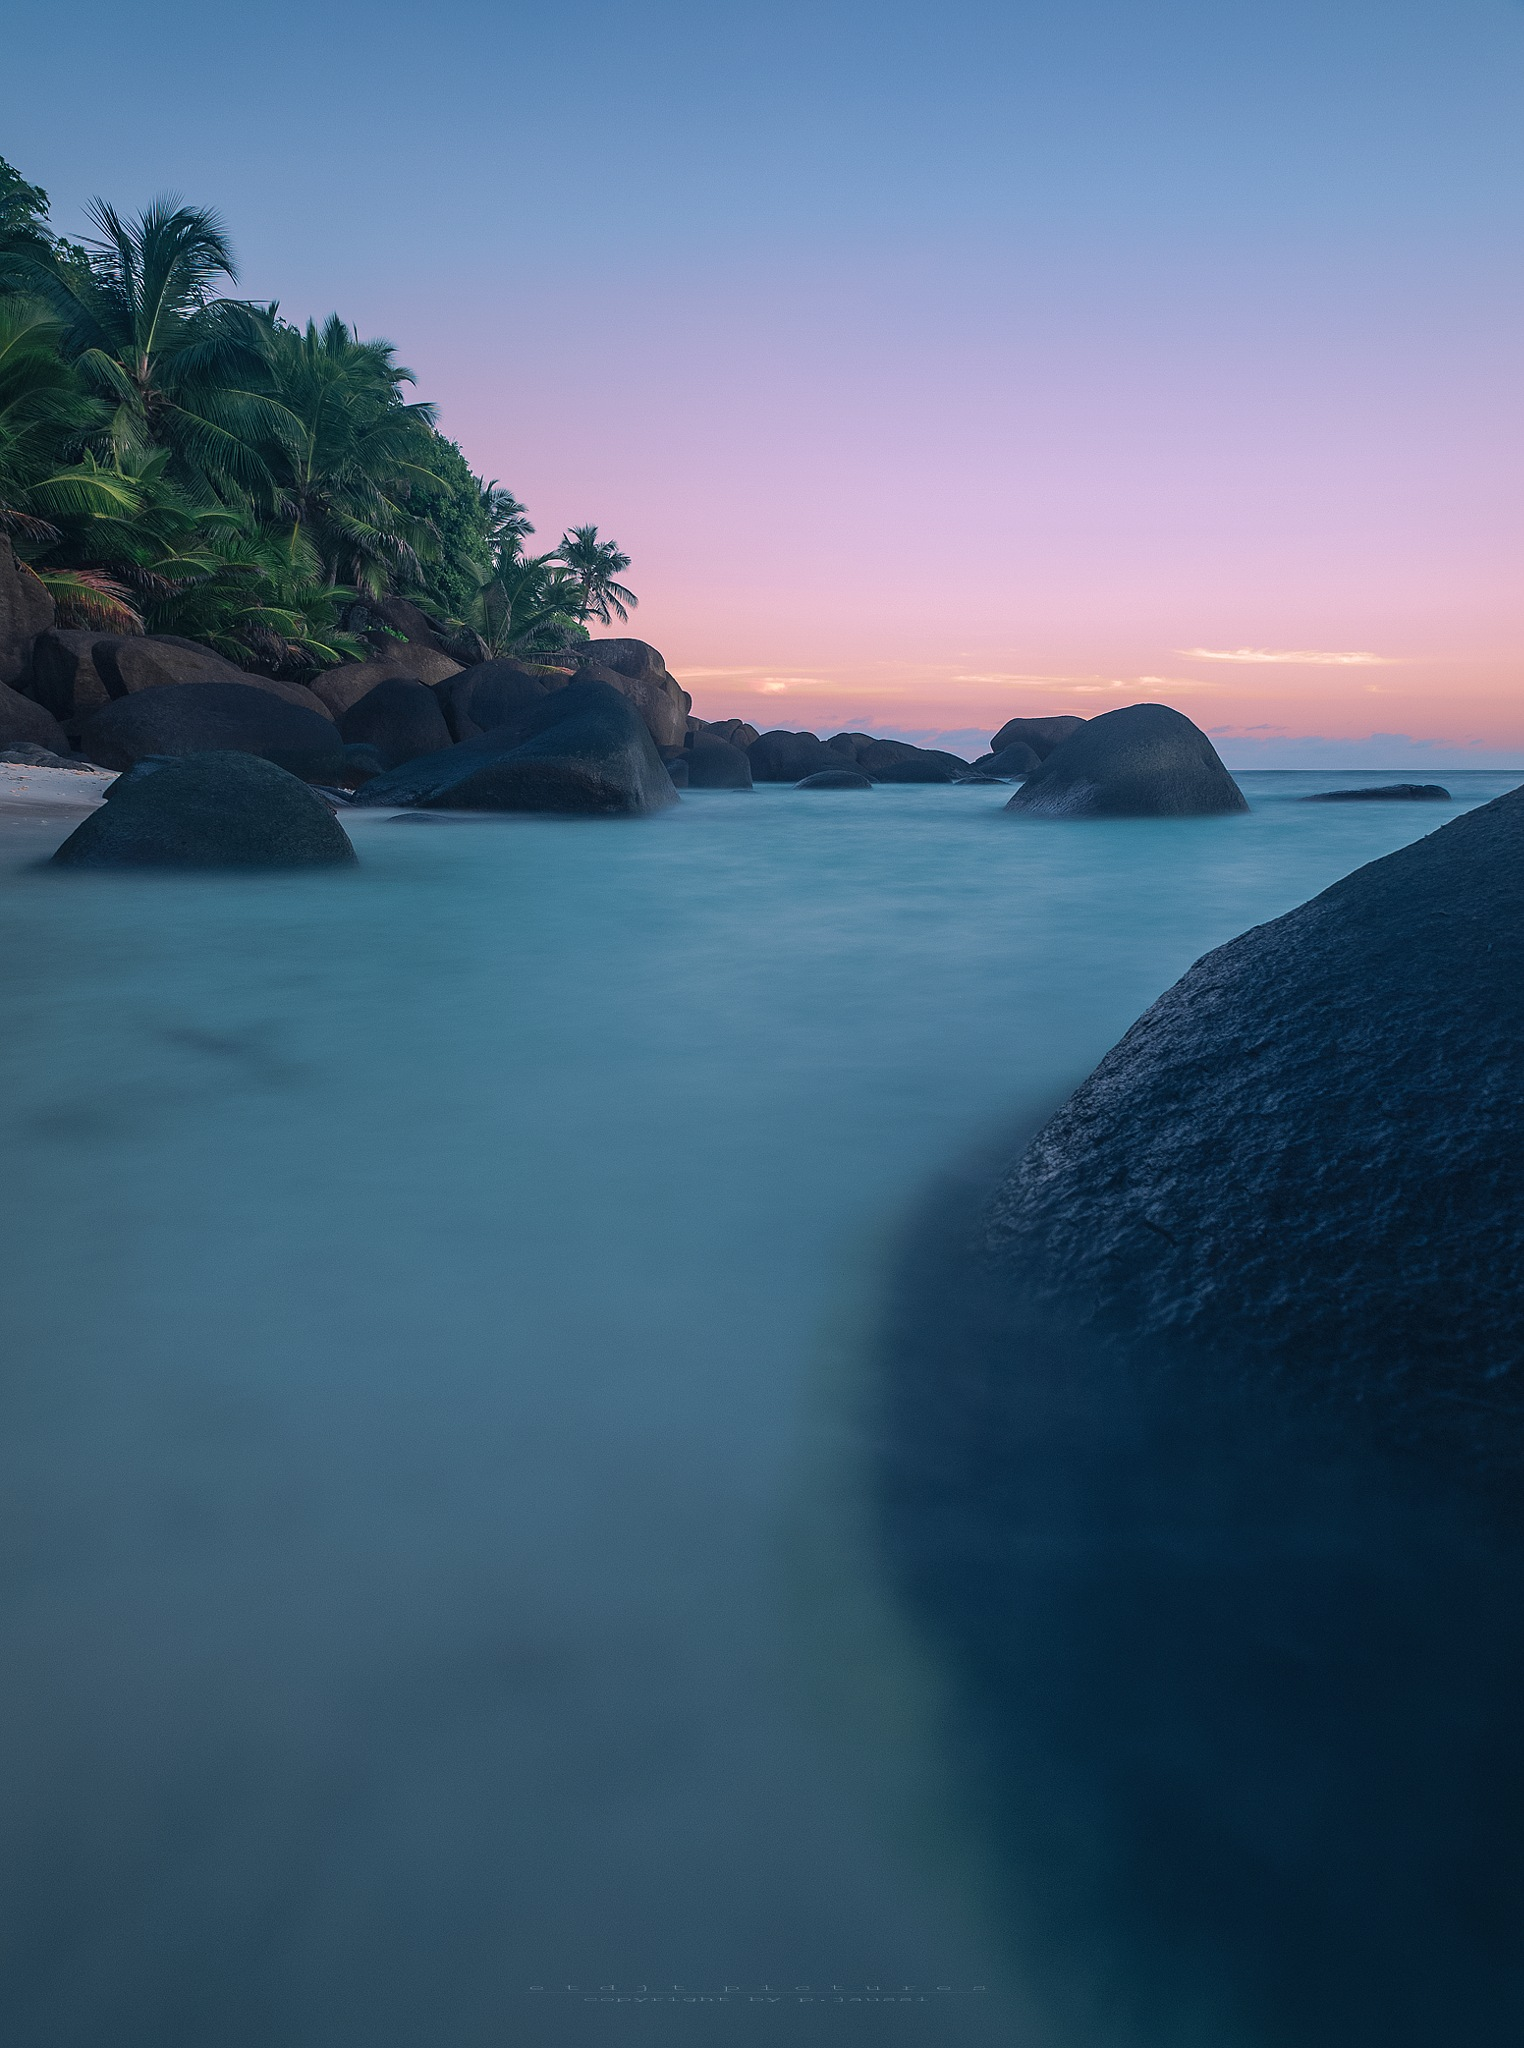 Baie Cipailles - Silhouette Island - Seychelles 2016 by etdjtpictures